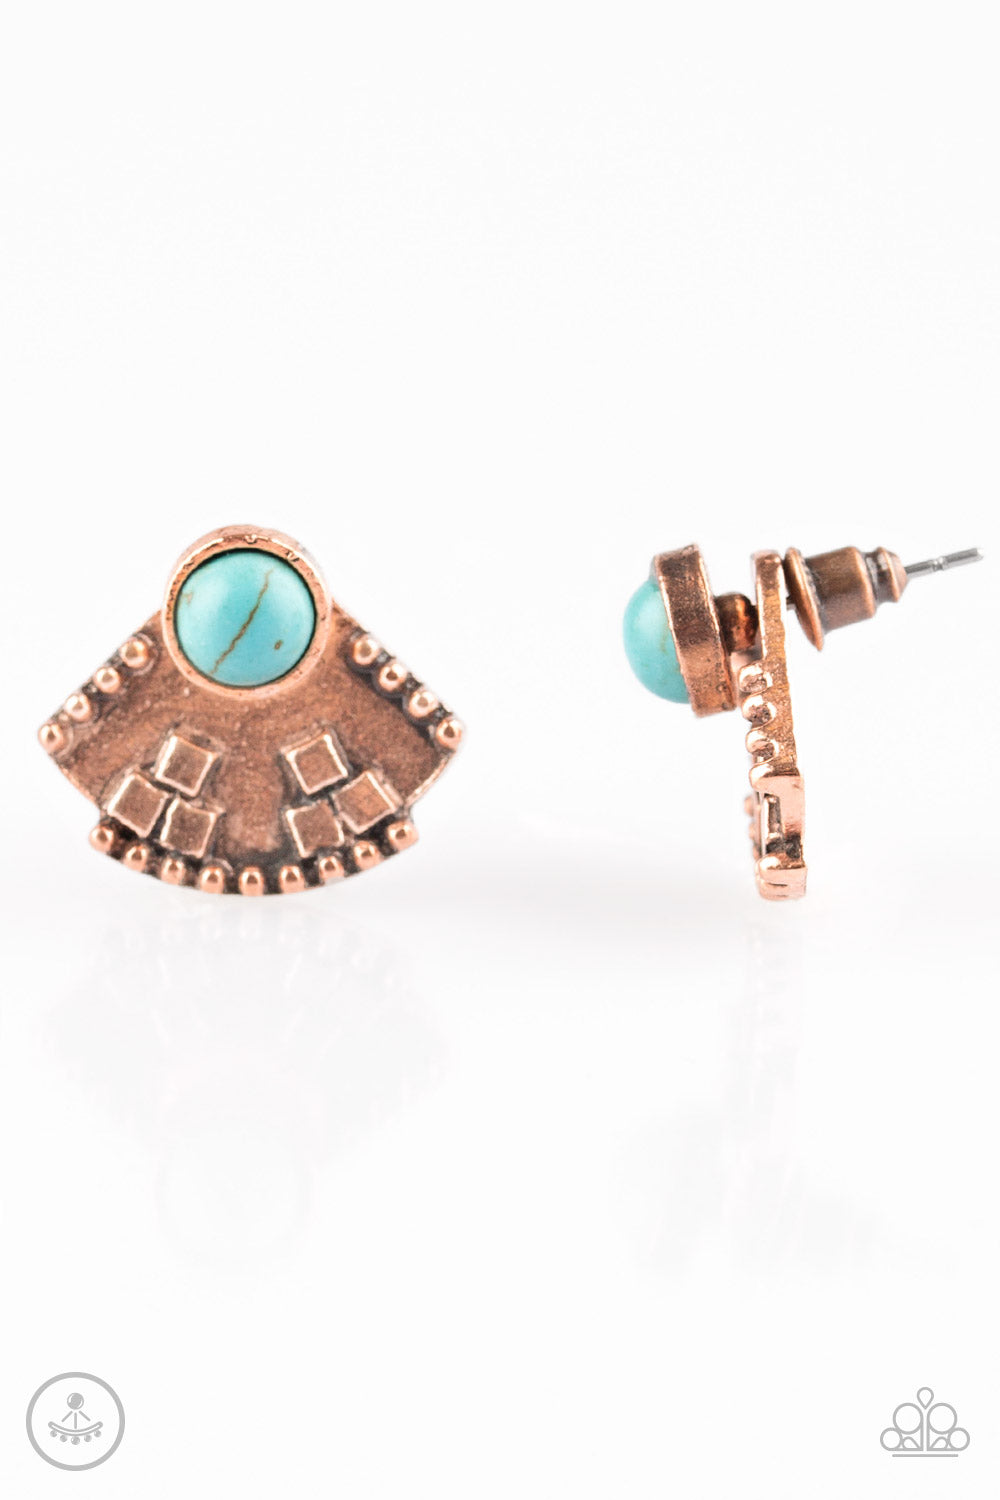 Paparazzi Stylishly Santa Fe - Copper Post Earrings - SavvyChicksJewelry